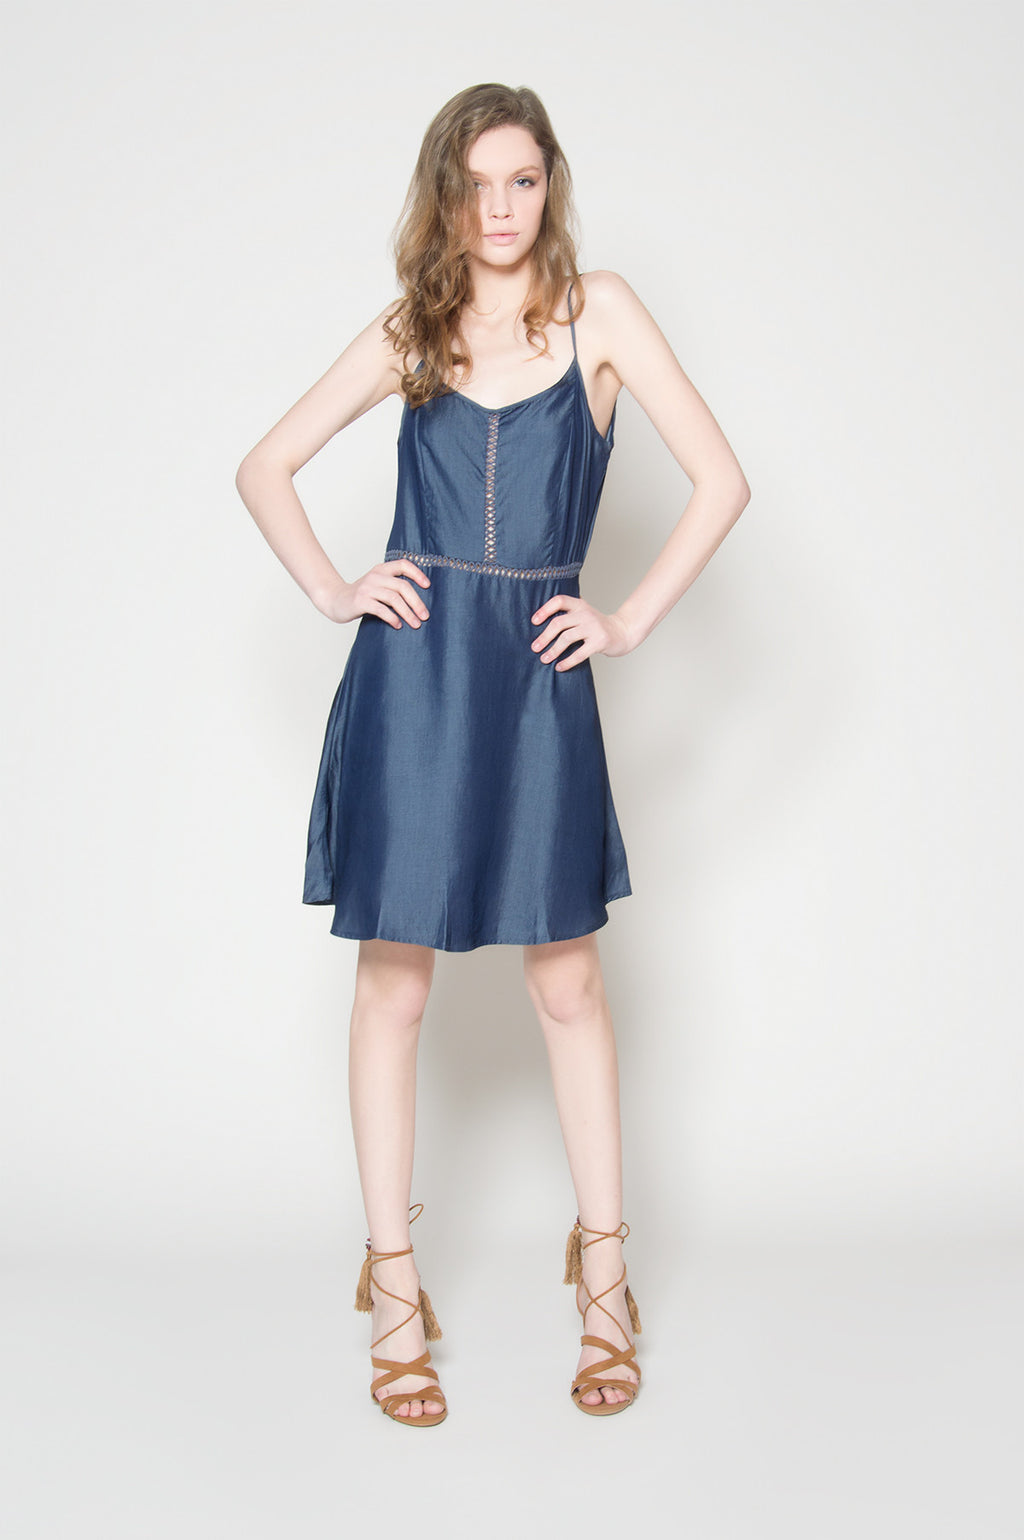 Tied together denim dress, Dresses